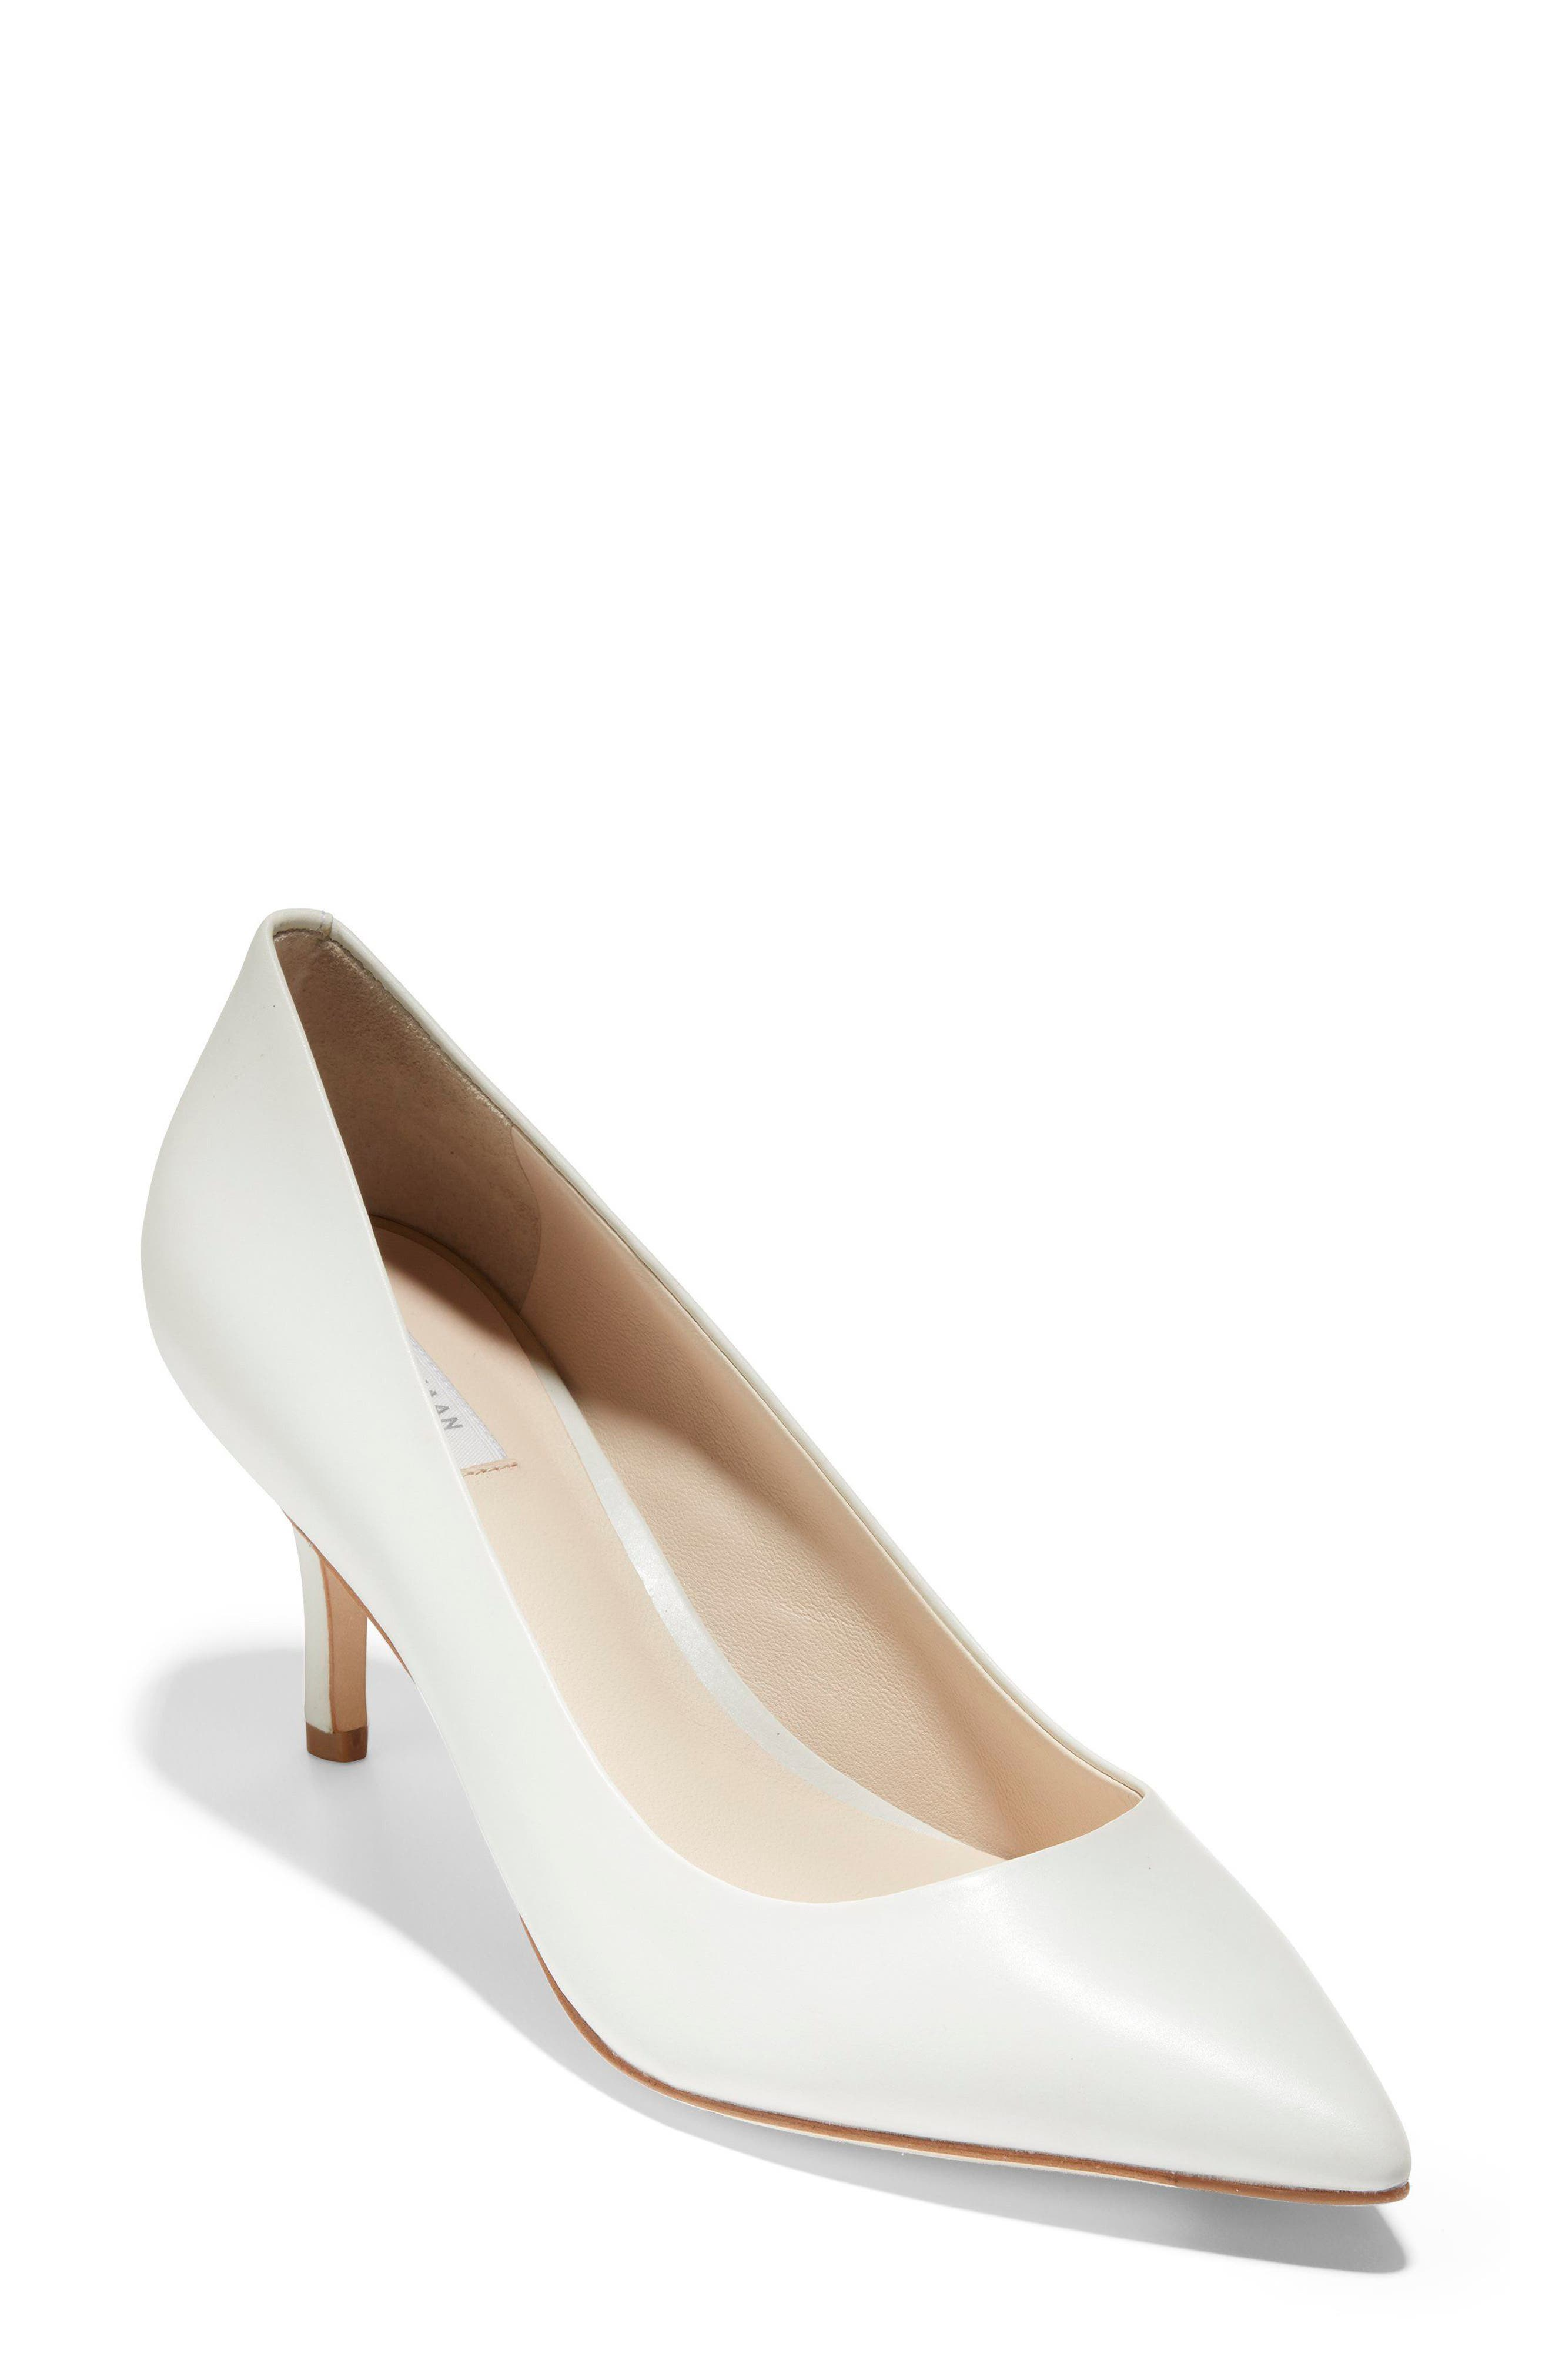 Vesta Pointy Toe Pump,                             Main thumbnail 1, color,                             White Leather